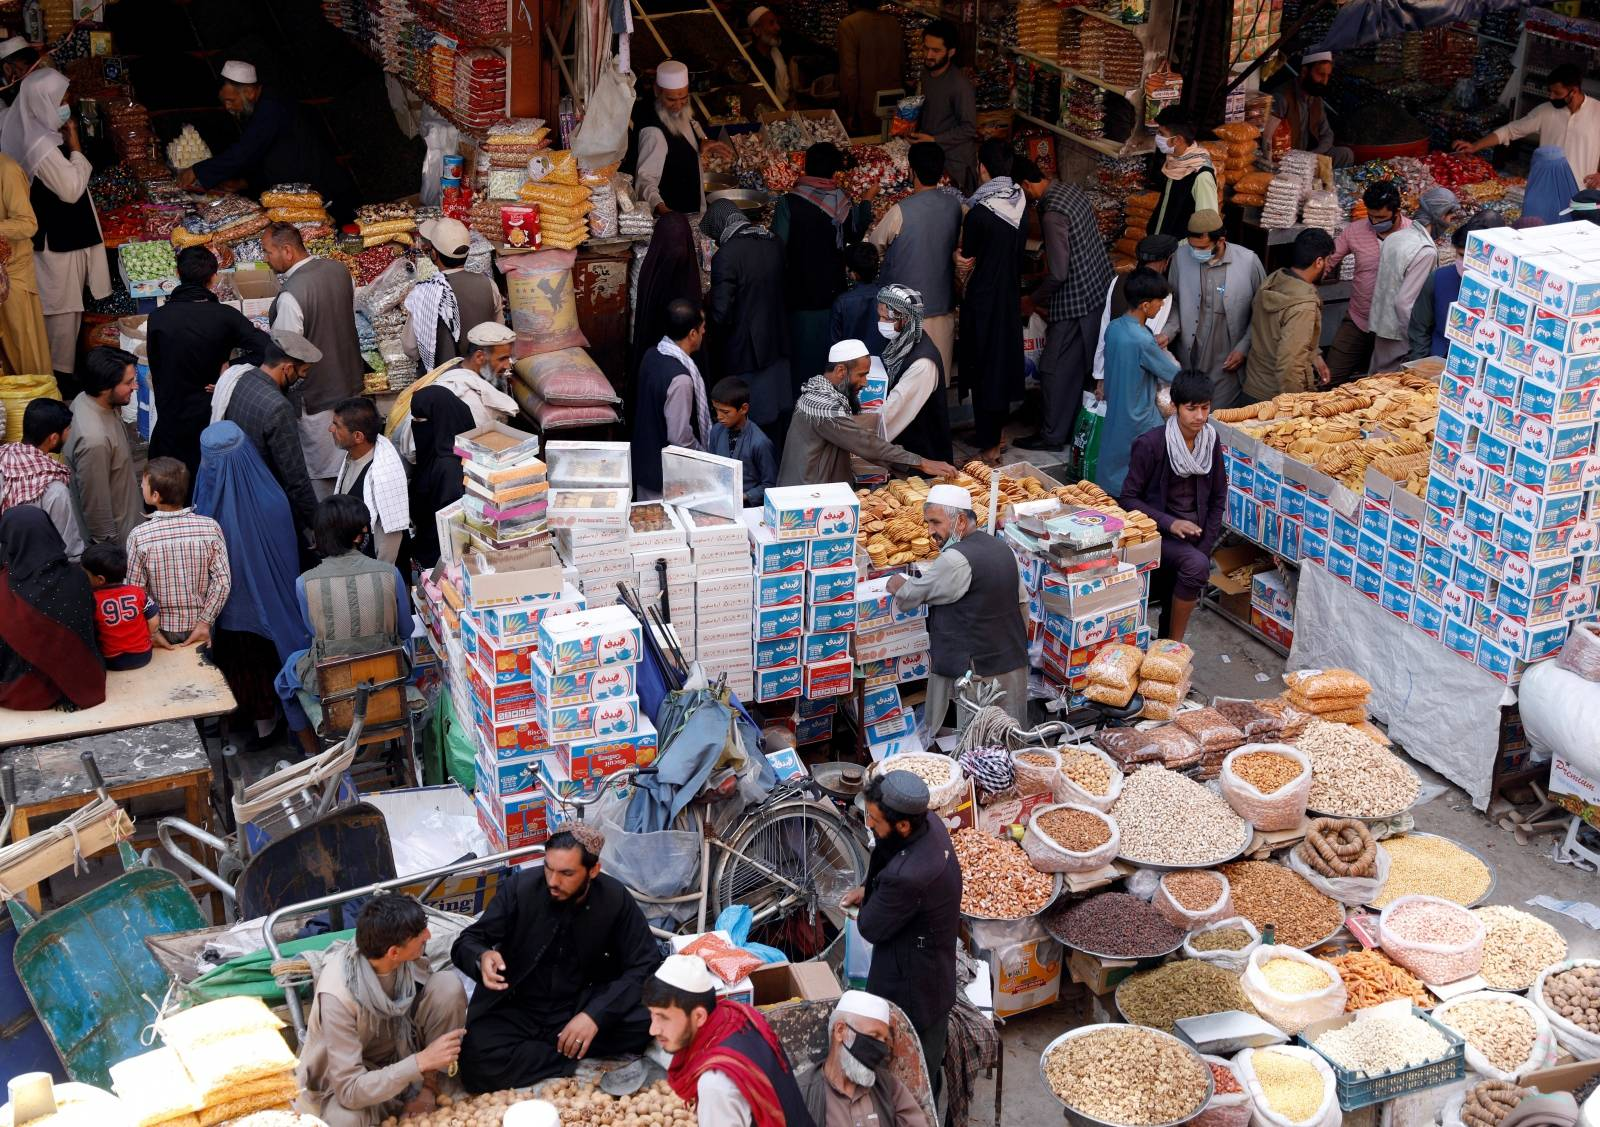 People shop for festive goods in preparation for Eid al-Fitr, marking the end of the fasting month of Ramadan amid the spread of the coronavirus disease (COVID-19), in Kabul